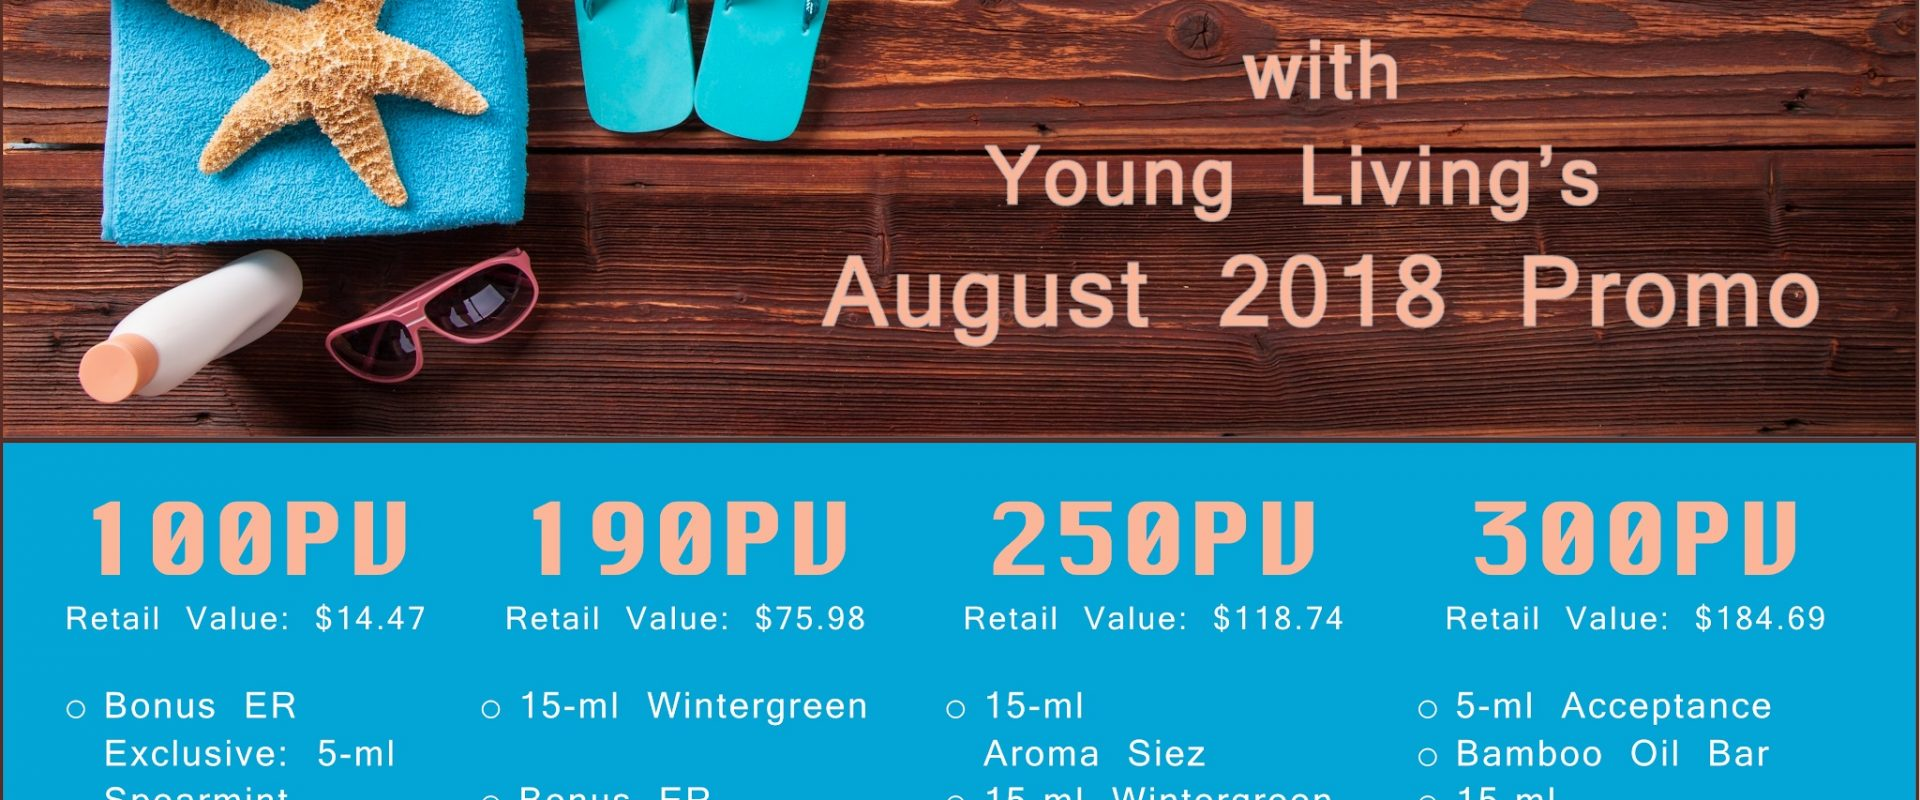 It's Still Summer with Young Living's August Promos!